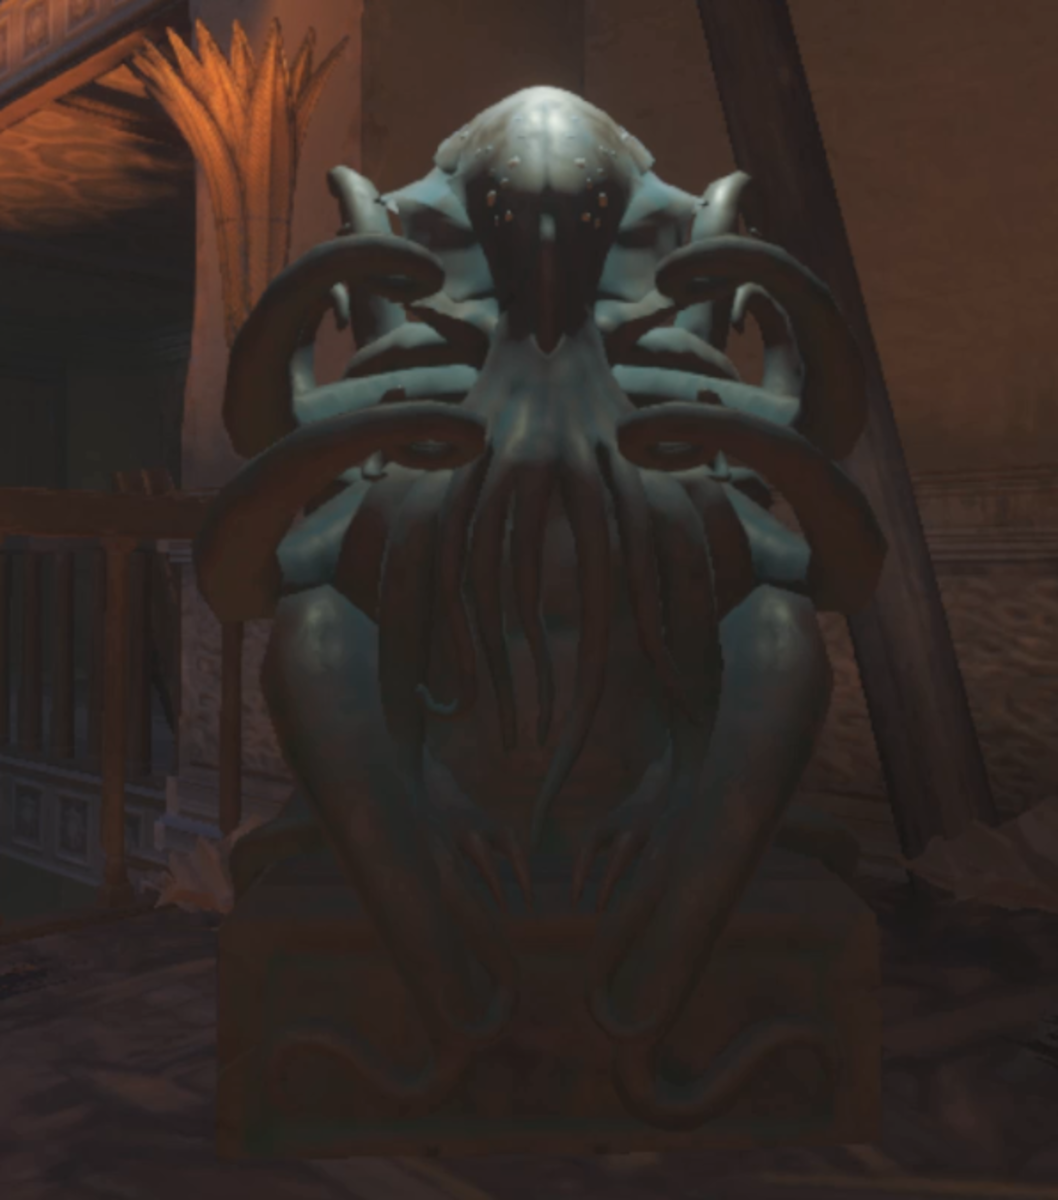 The statues look like the creature you turn to when in Beast Mode.